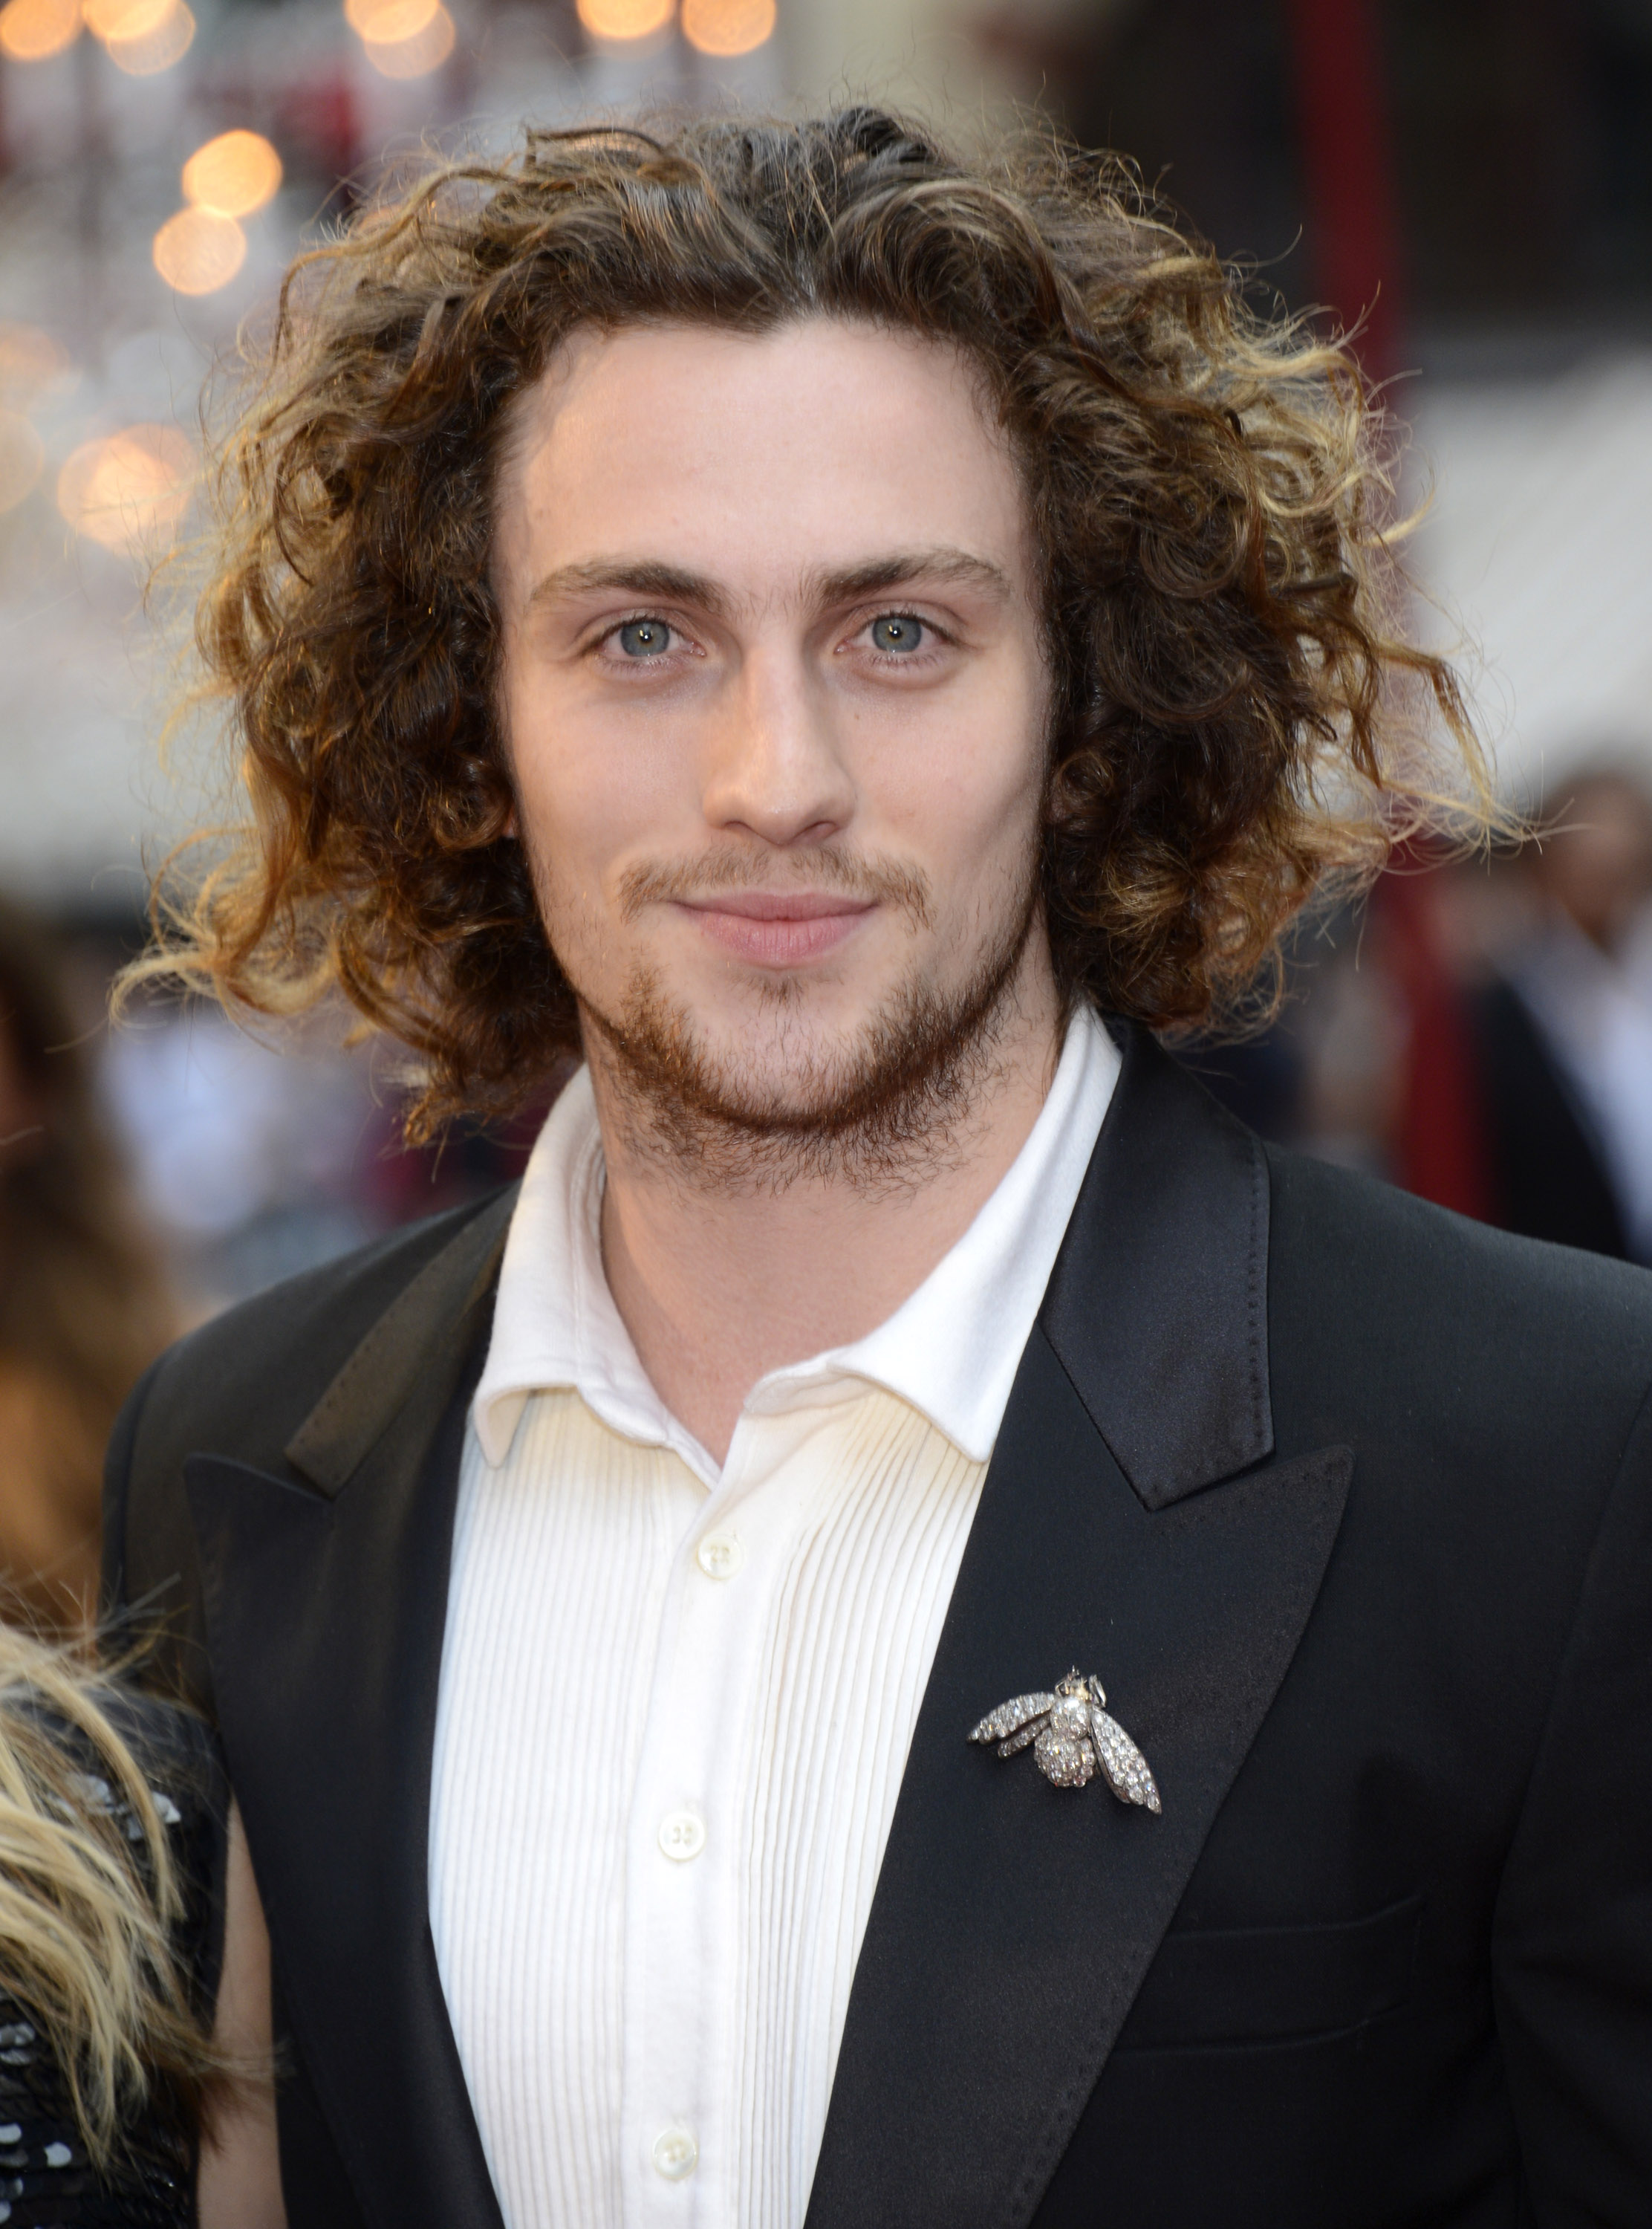 2. Aaron Taylor-Johnson